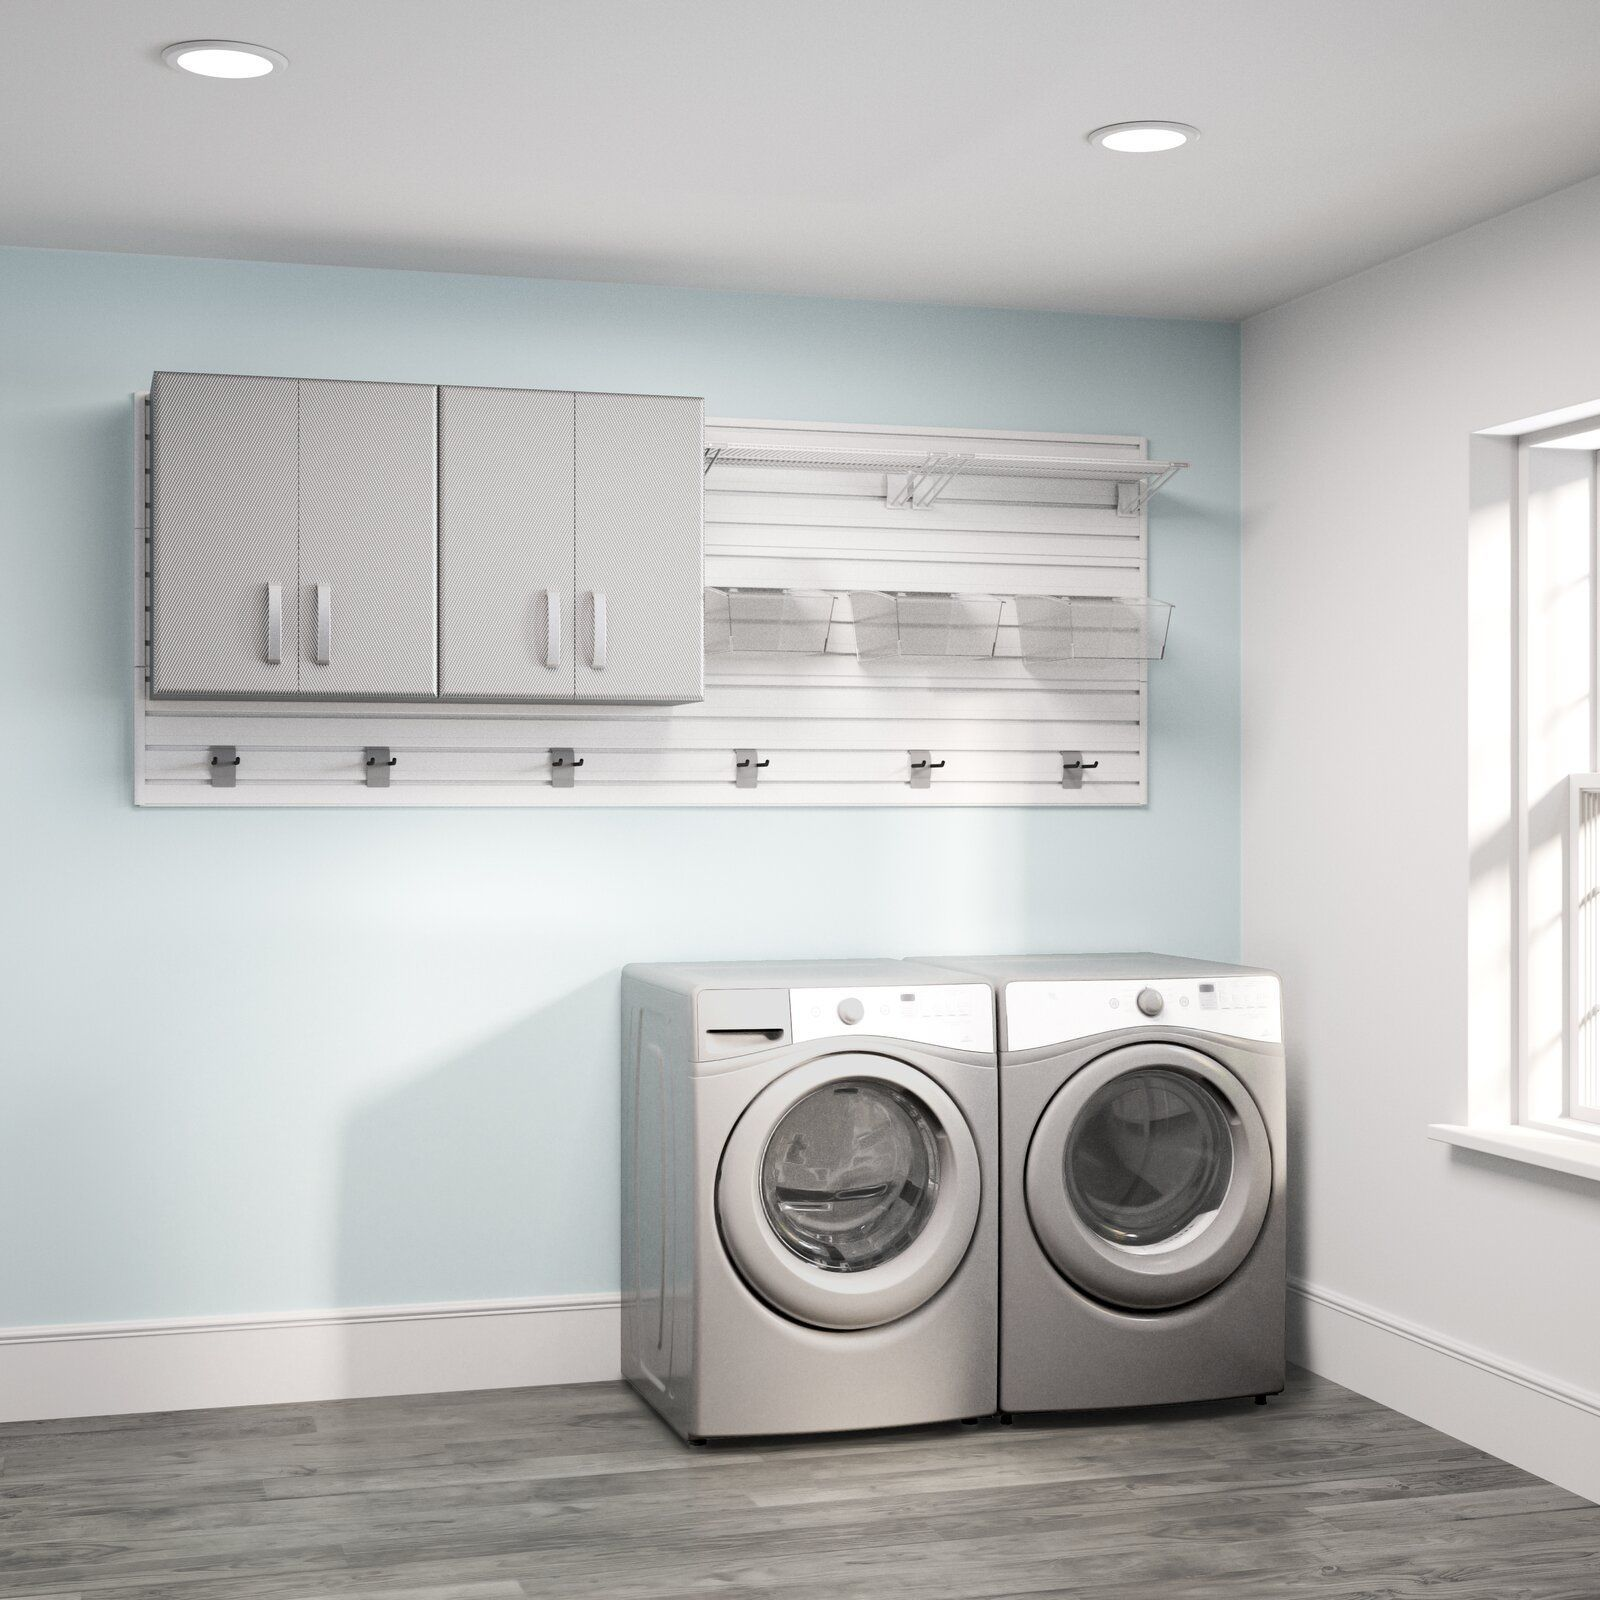 Flow Wall 3 Piece Laundry Room Organizer Set Wayfair Laundry Room Storage Small Laundry Room Organization Laundry Cabinets